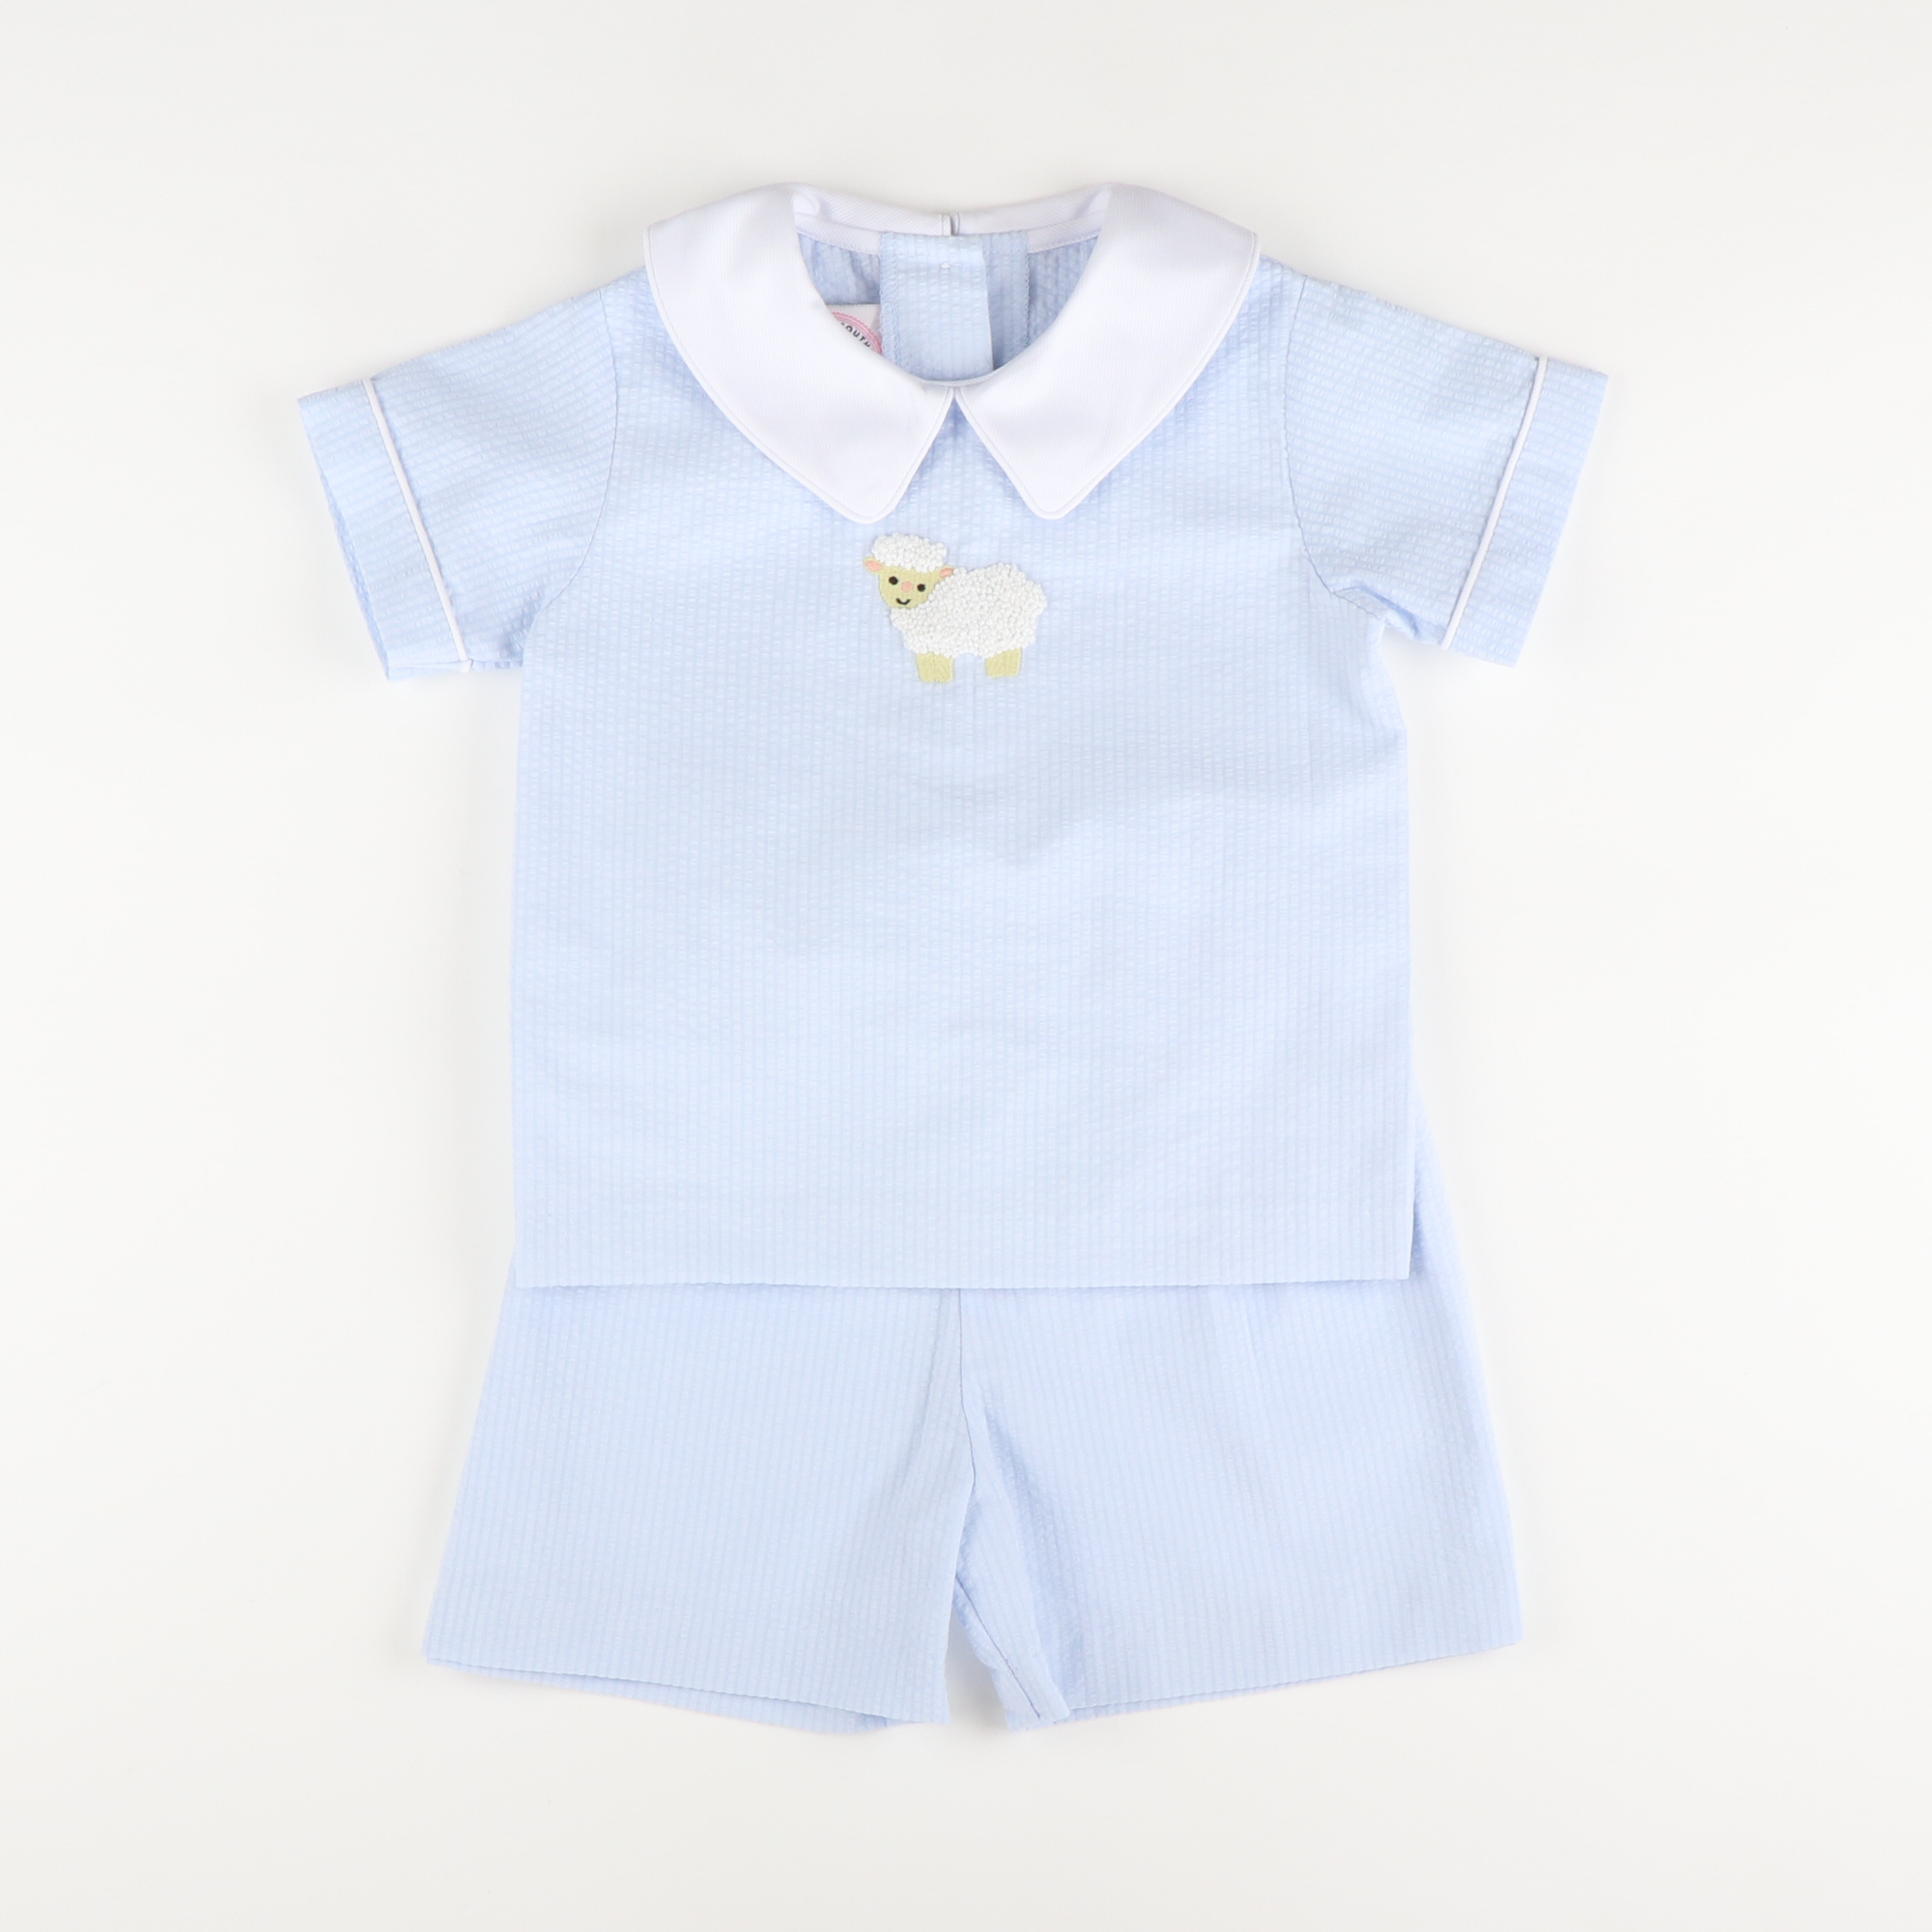 Embroidered Lamb Collared Short Set - Light Blue Seersucker Chambray